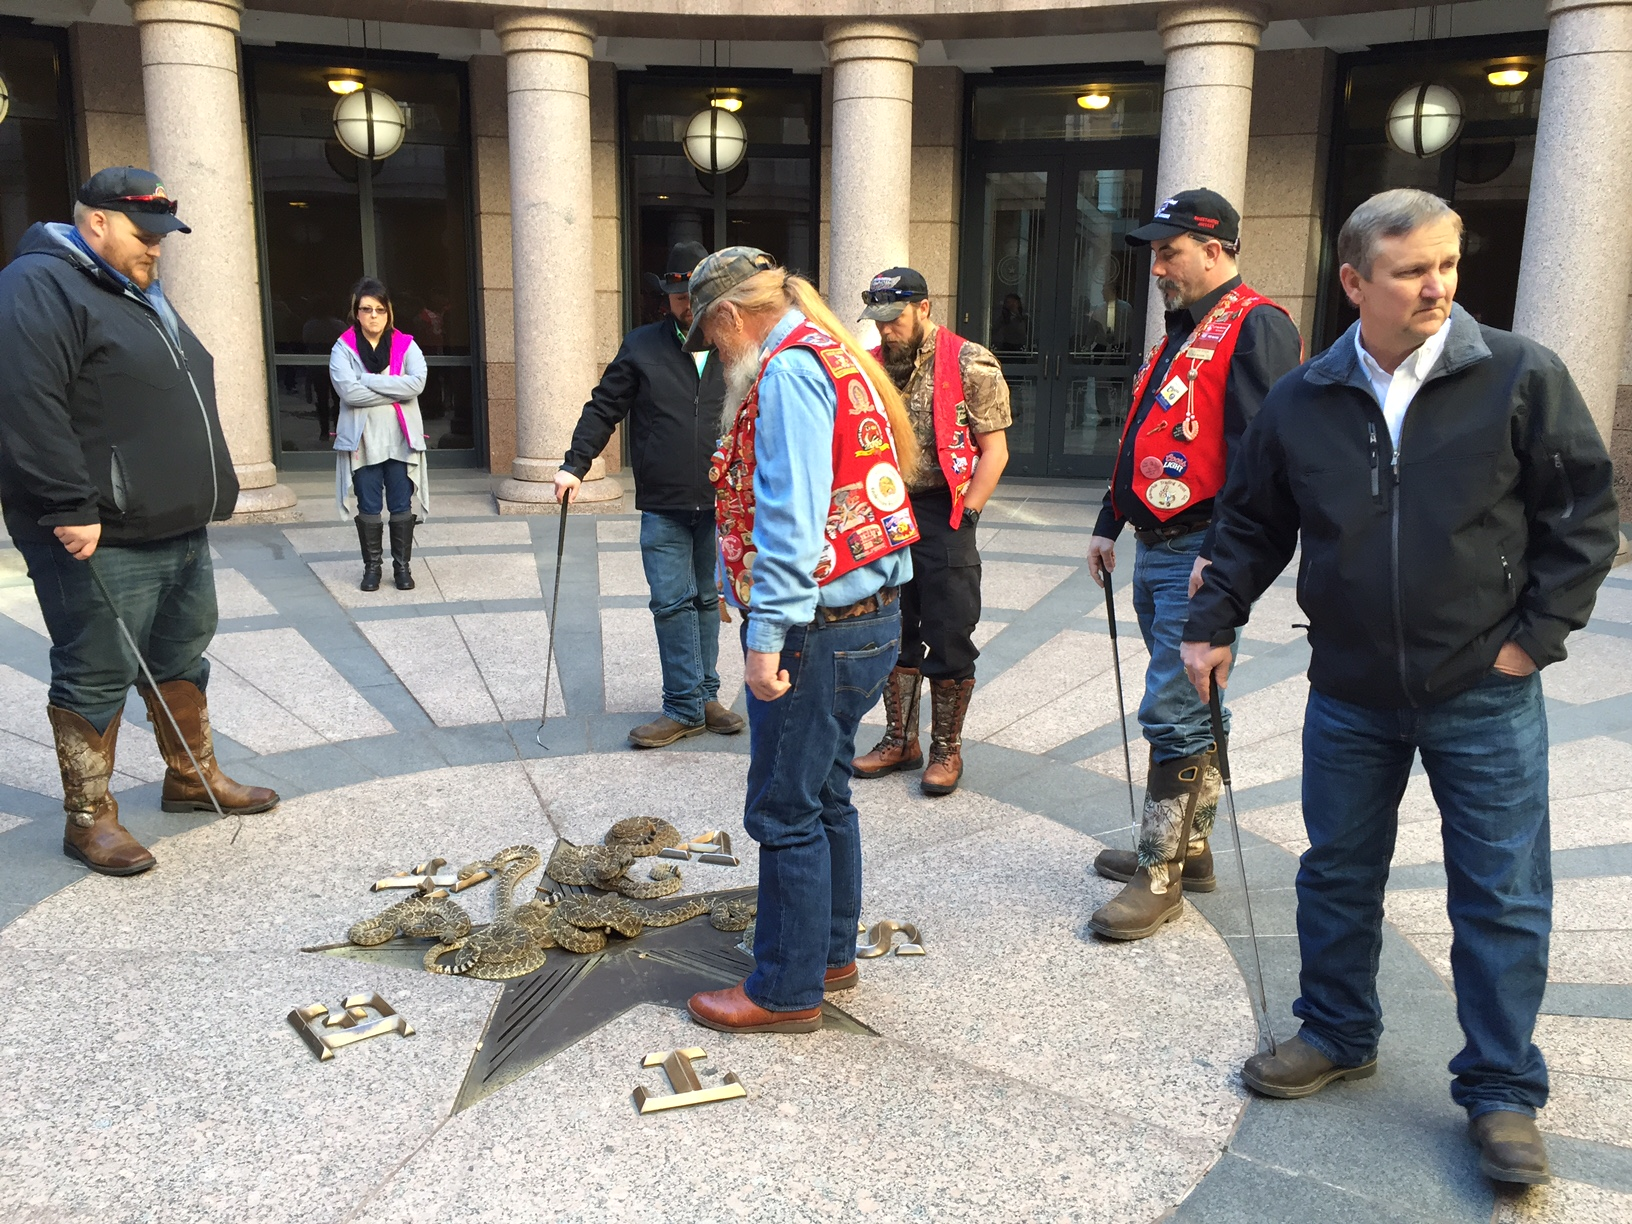 rattlesnakes at the capitol_241854